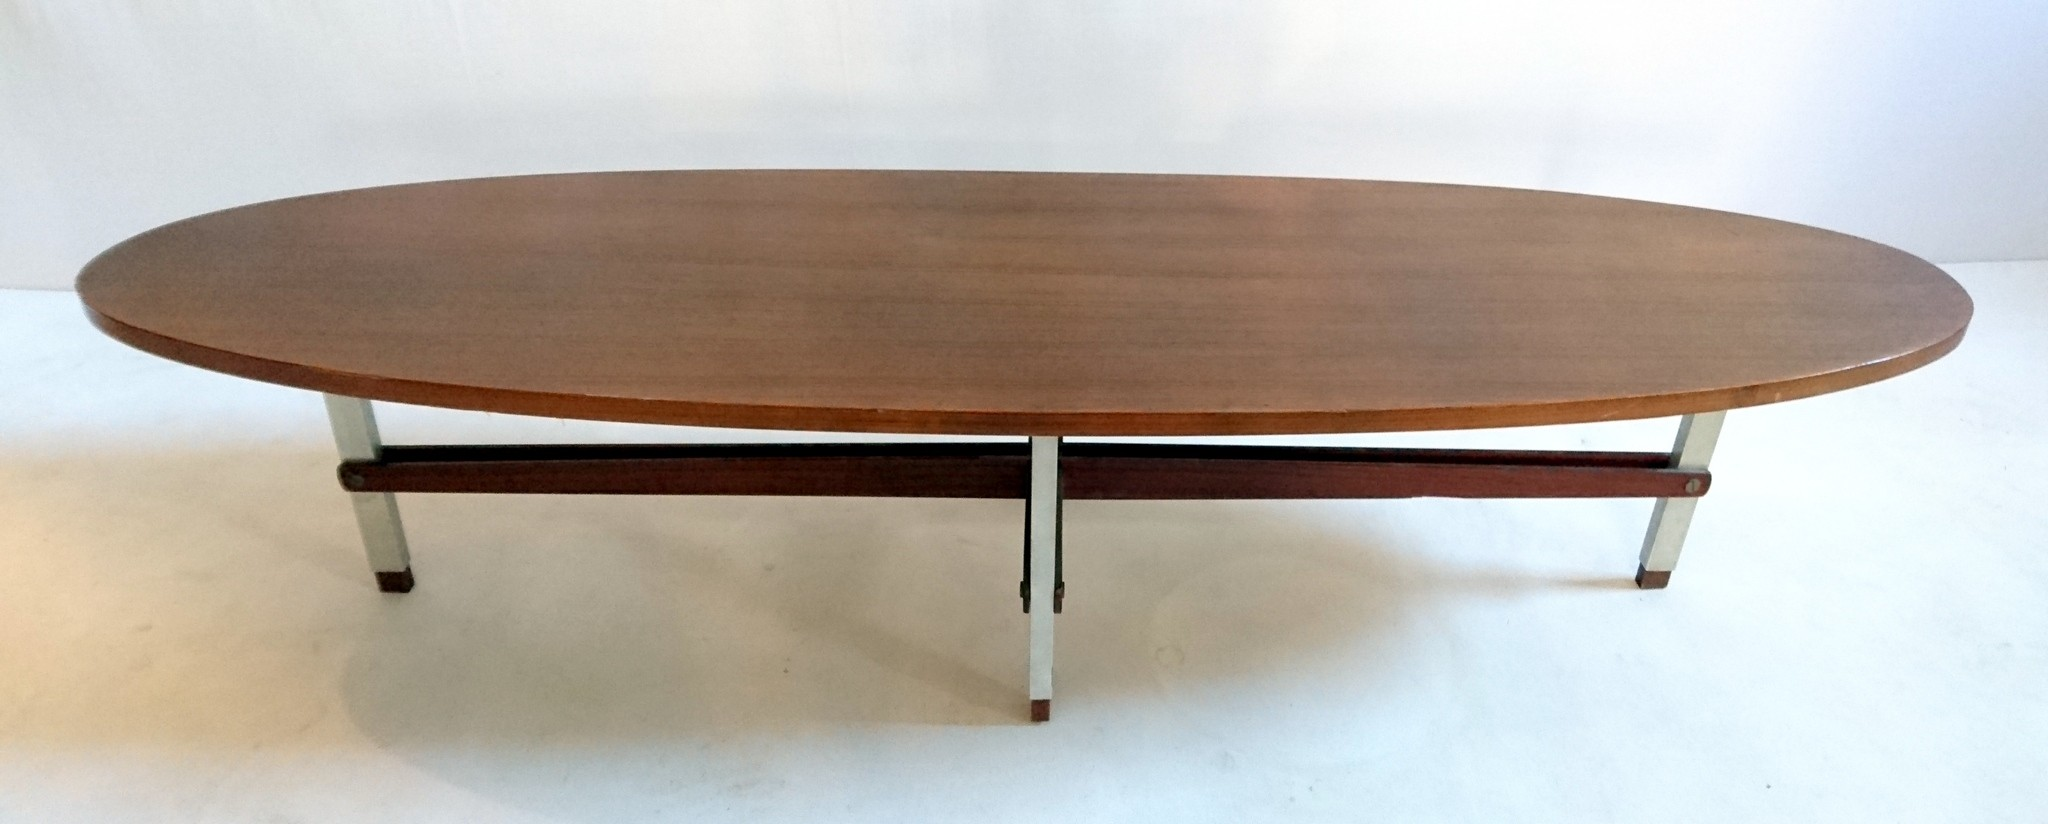 Italian Oval Teak Coffee Table 1960s Previous Next